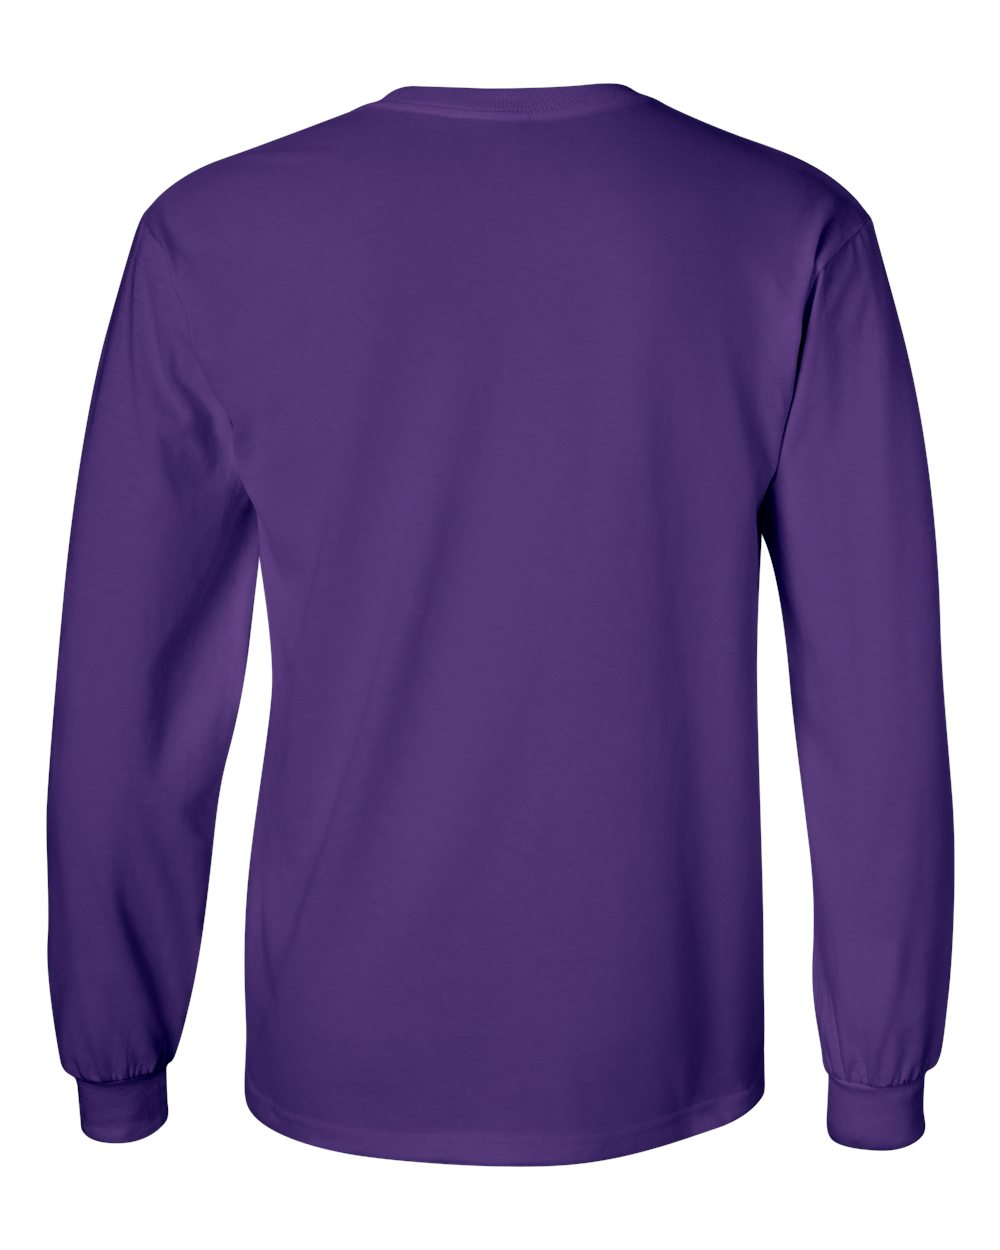 Gildan-Men-039-s-Ultra-Cotton-6-oz-Long-Sleeve-T-Shirt-G240-S-5XL thumbnail 76